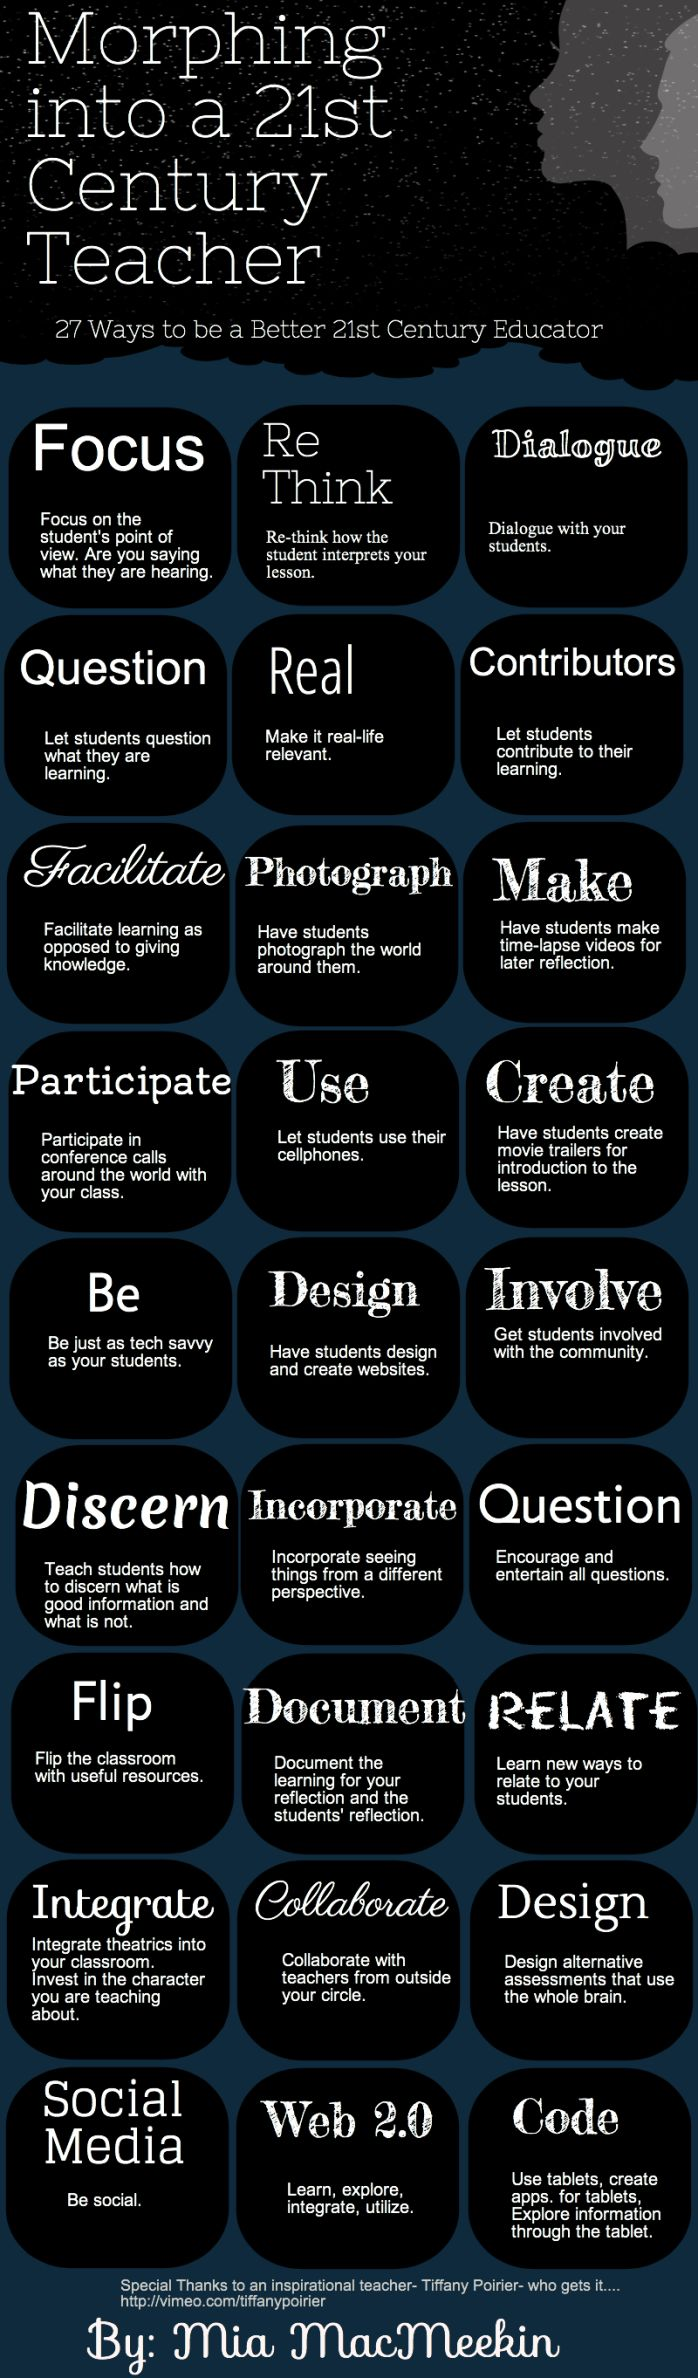 27 ways to morph into a 21st century teacher. I really like this info graphic.